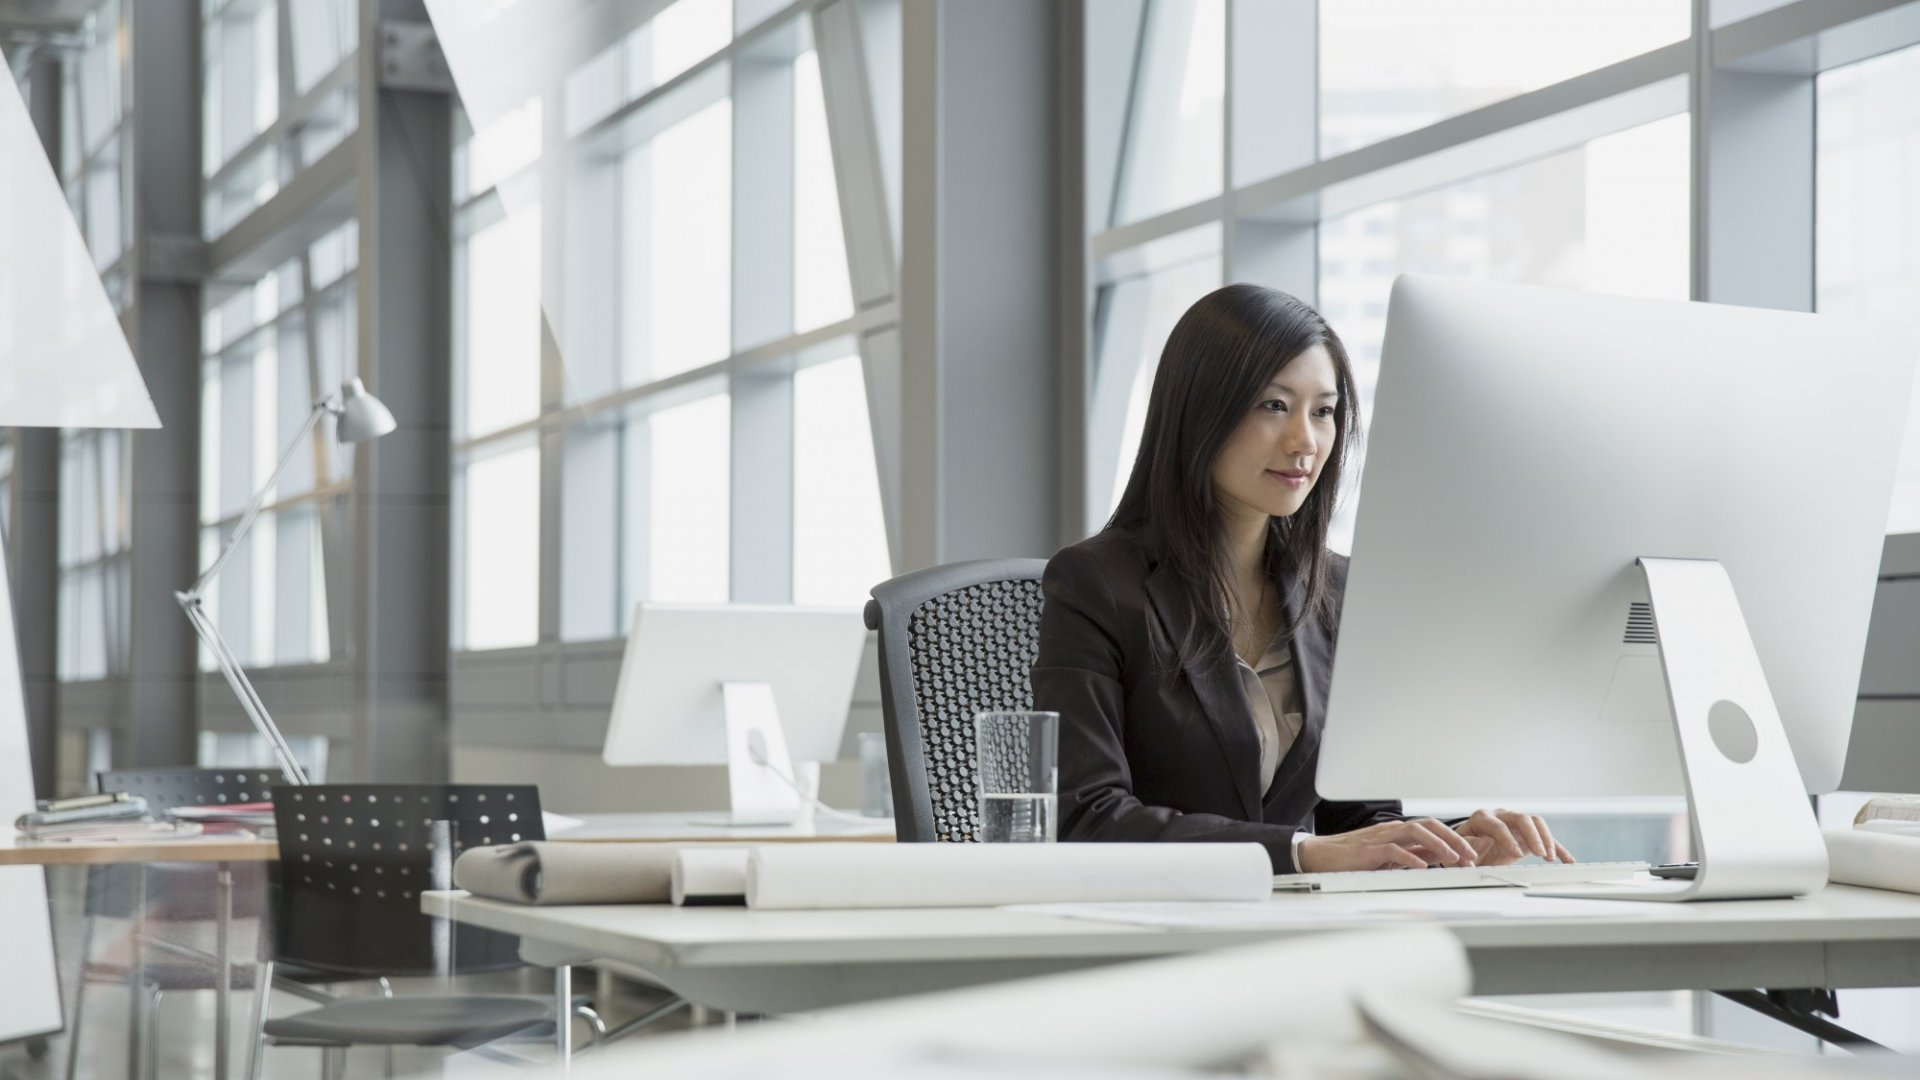 Less Than 1 in 10 Senior Leaders Are Women: How to Develop (and Promote) More Female Executives